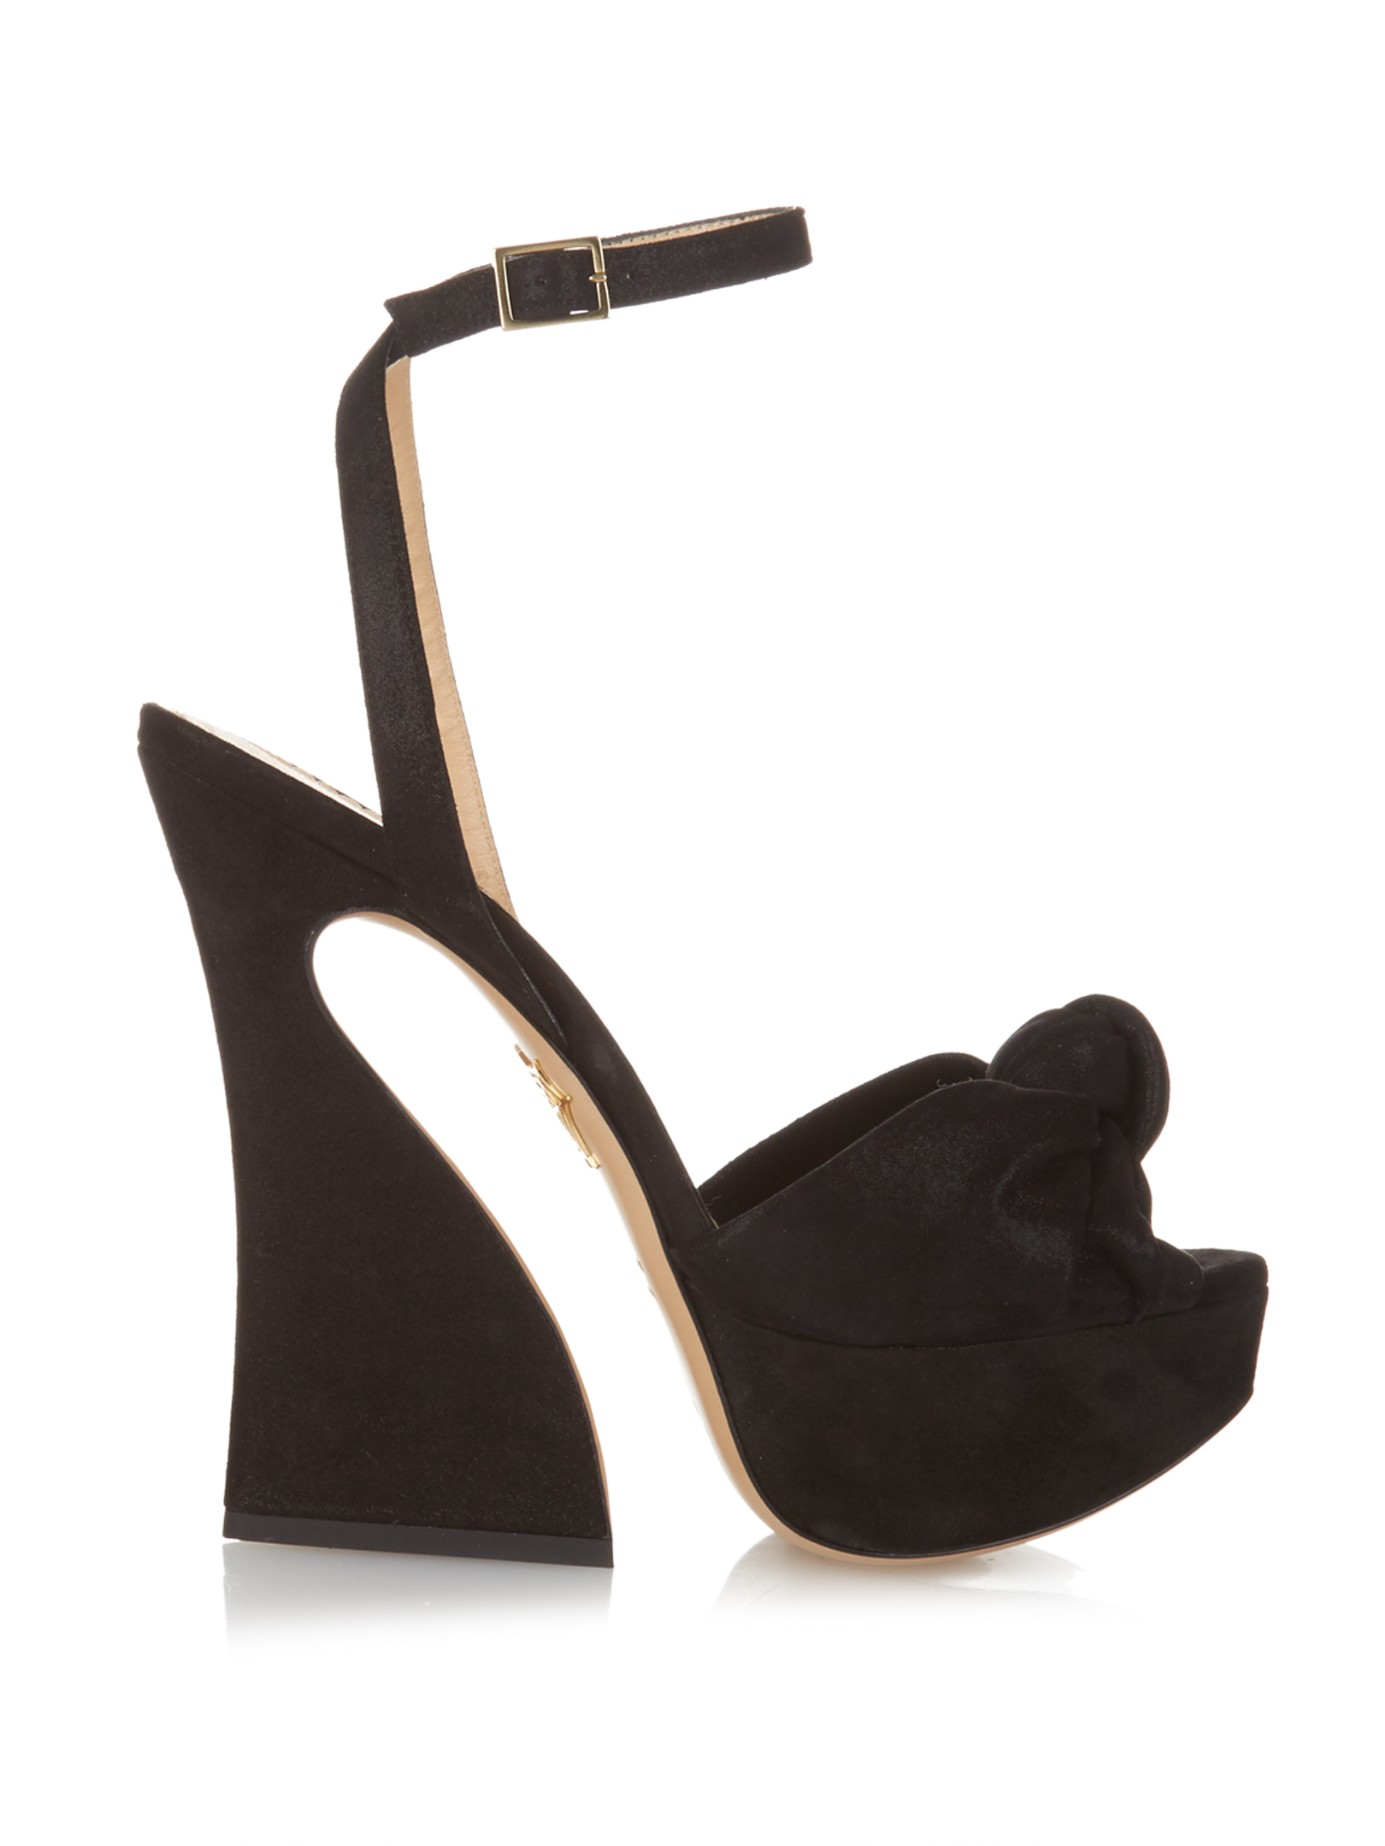 cc81d15fceee Lyst - Charlotte Olympia Vreeland Suede Knotted Sandals in Black